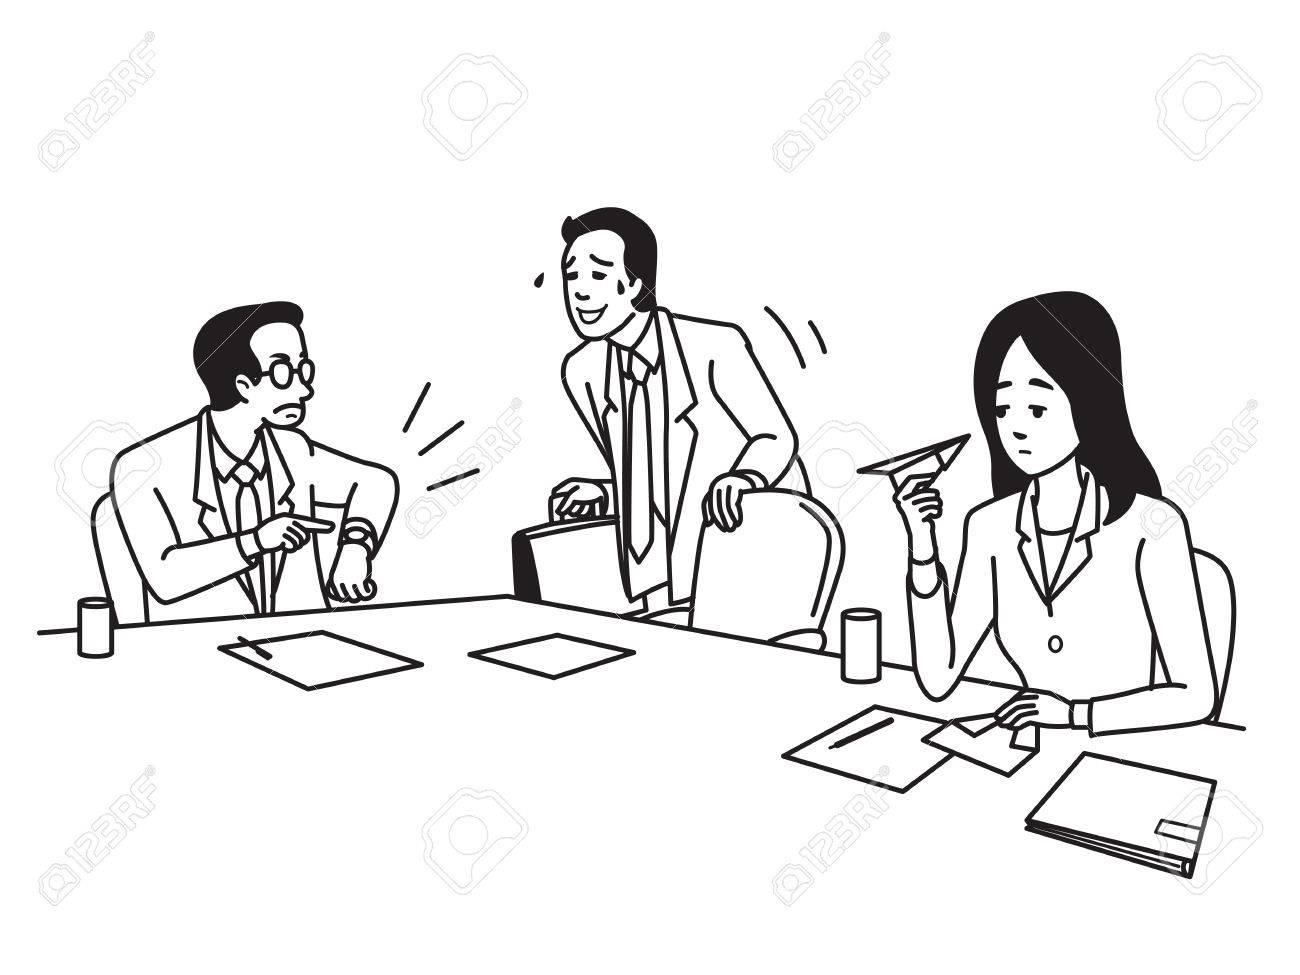 1300x975 Businessman, Office Worker, Has Come Meeting Late As Manager